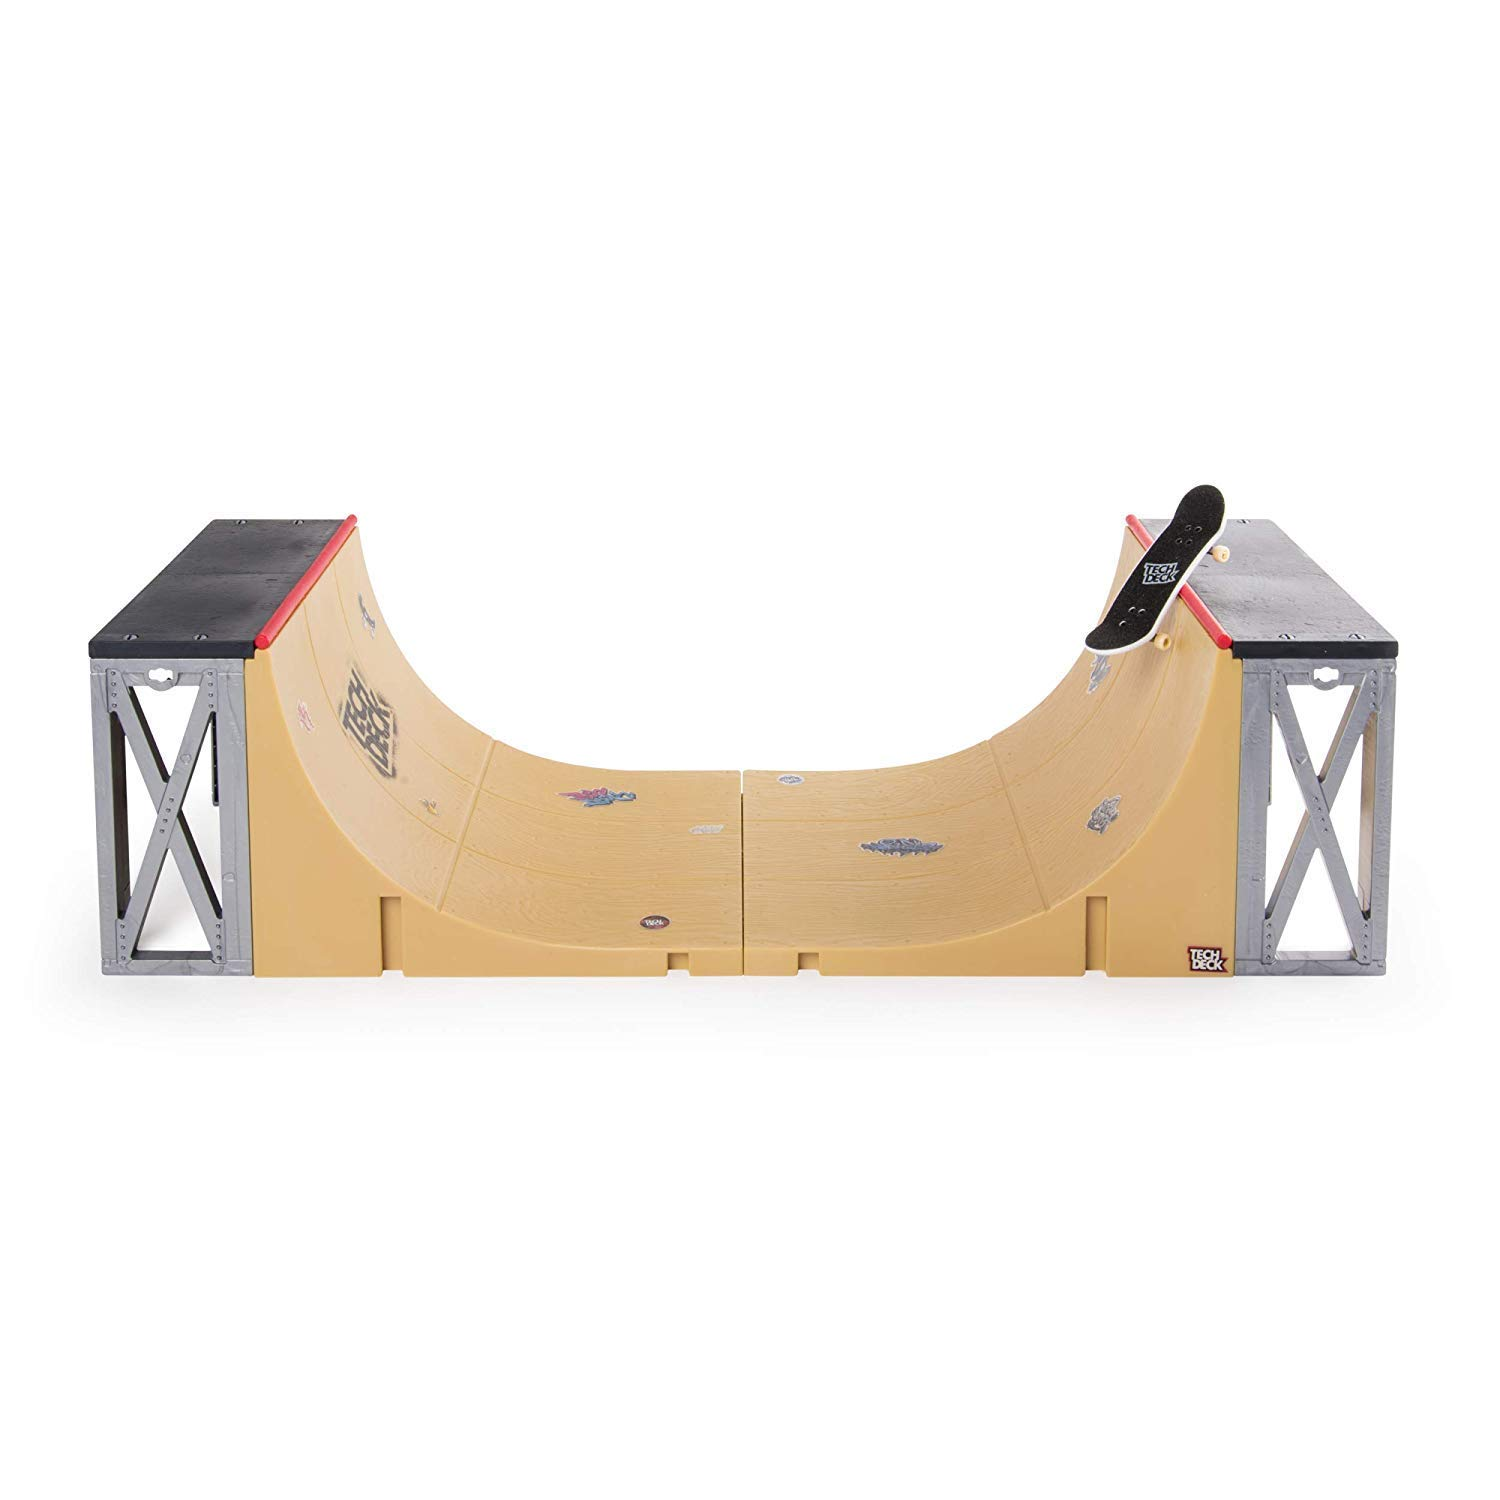 Tech Deck - Ultimate Half-Pipe Ramp and Exclusive Primitive Pro Model Finger Board, for Ages 6 and Up by Tech Deck (Image #1)